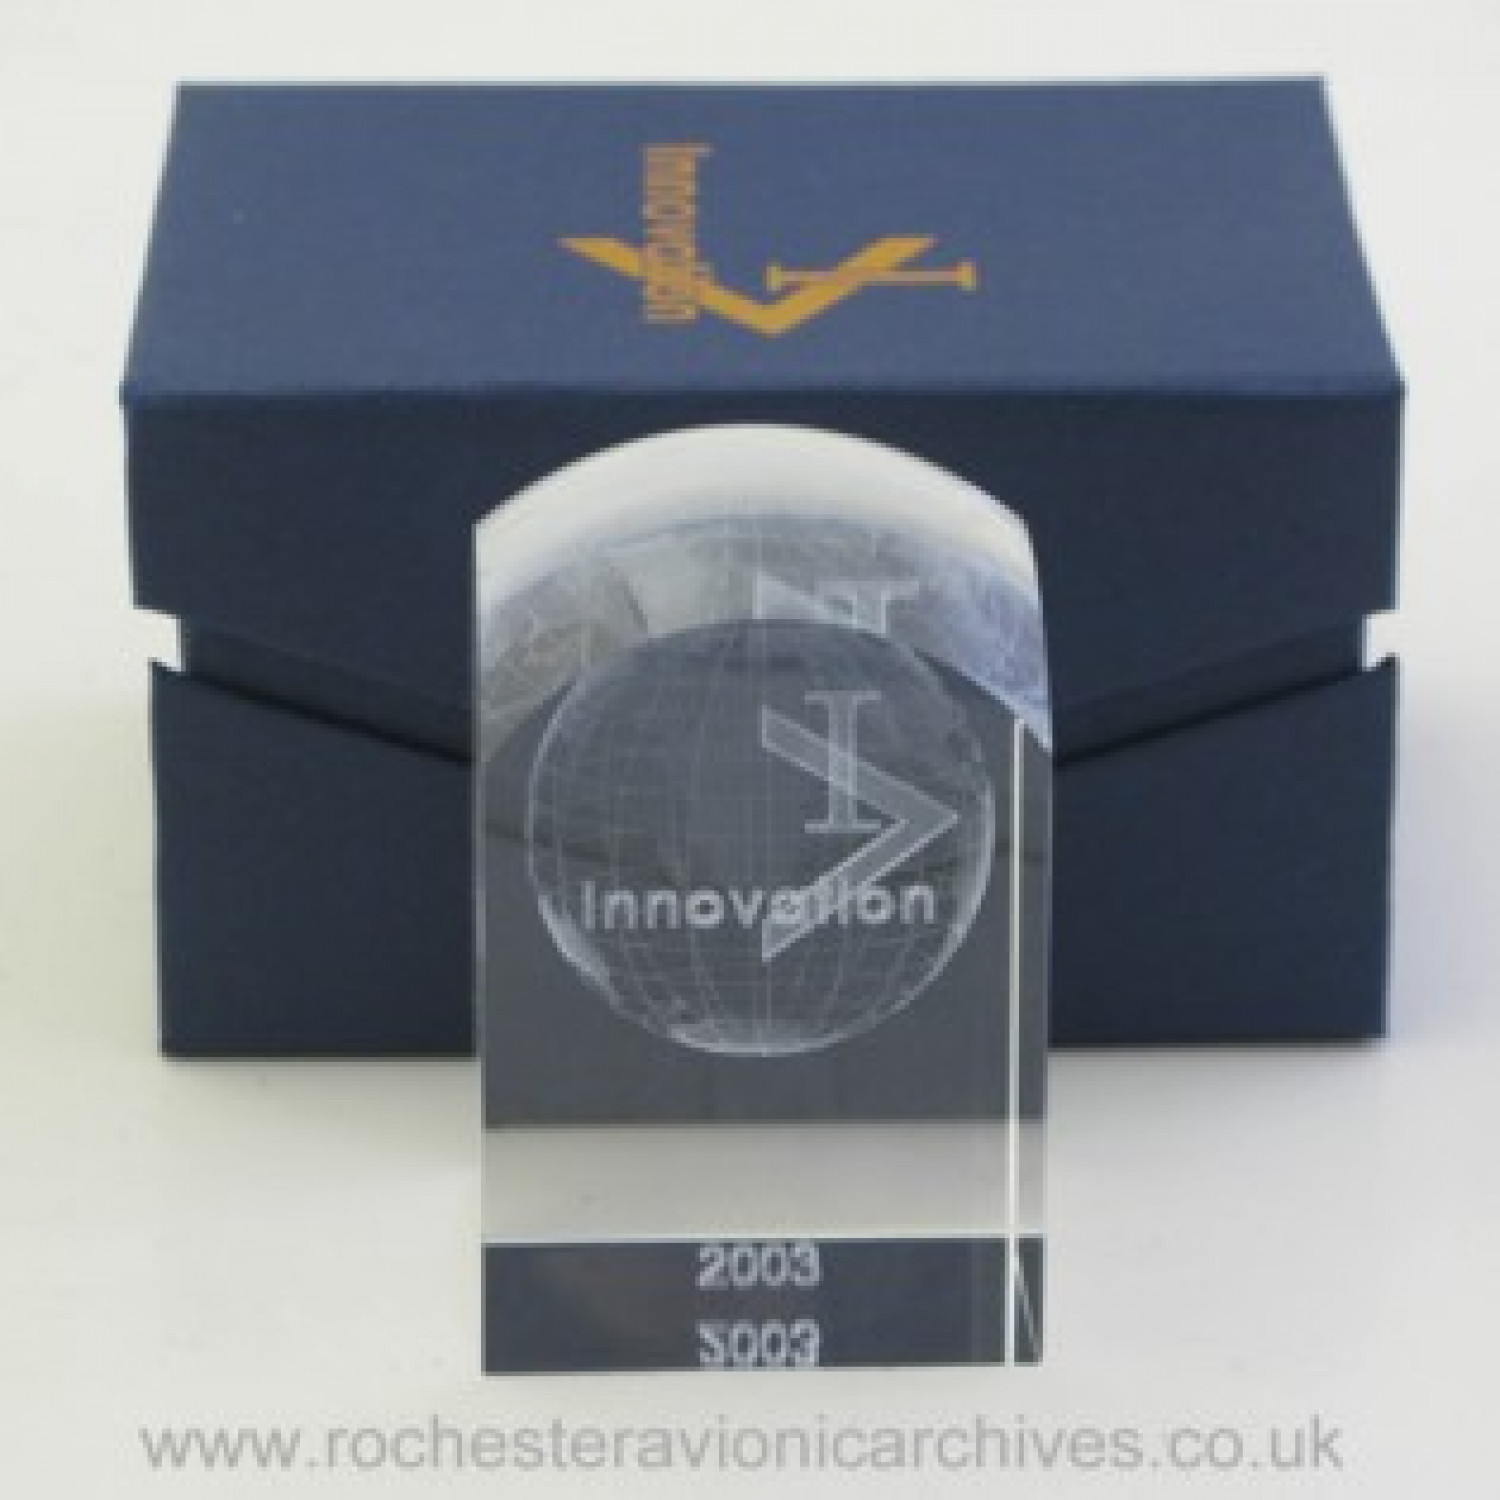 Chairman's Award for Innovation 2003